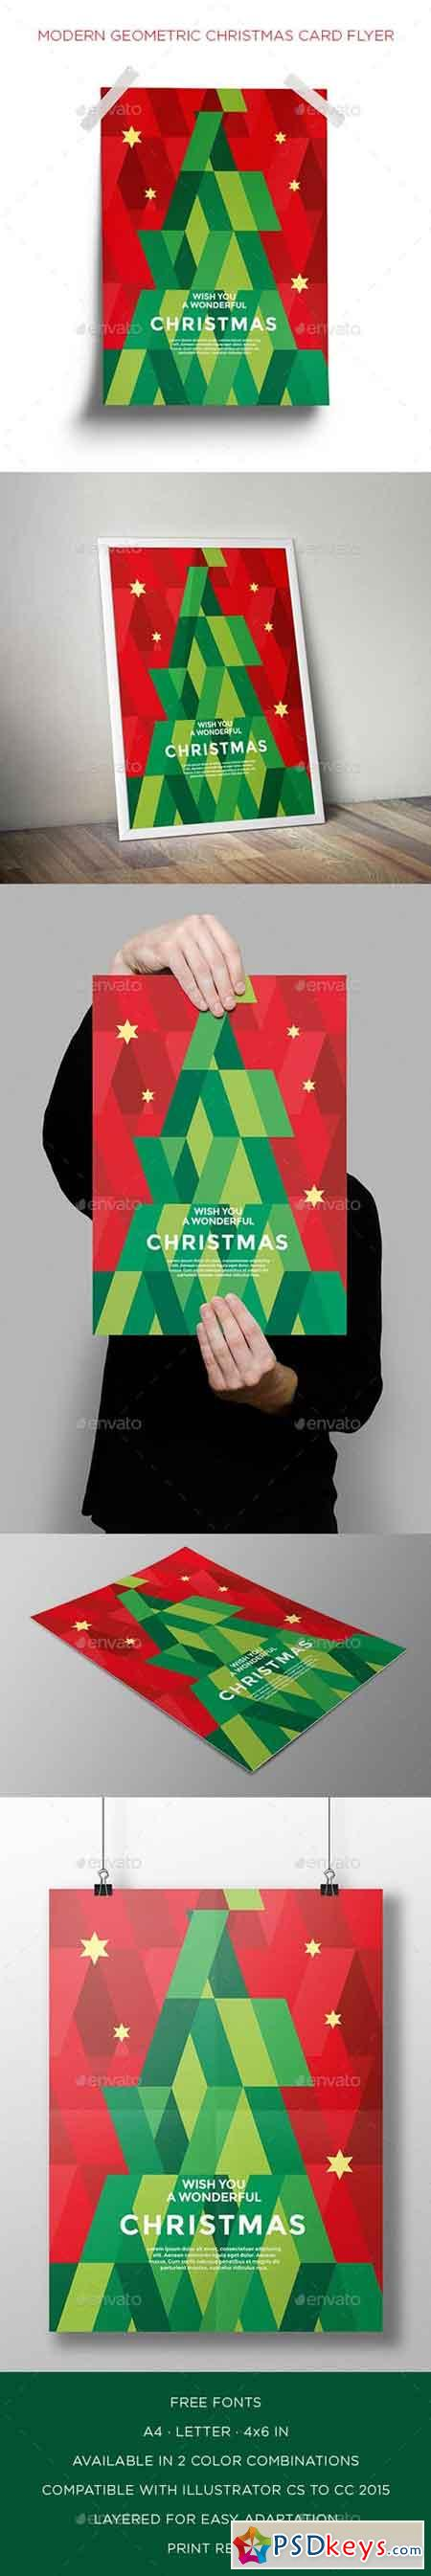 Modern Geometric Christmas Card Flyer 18917660